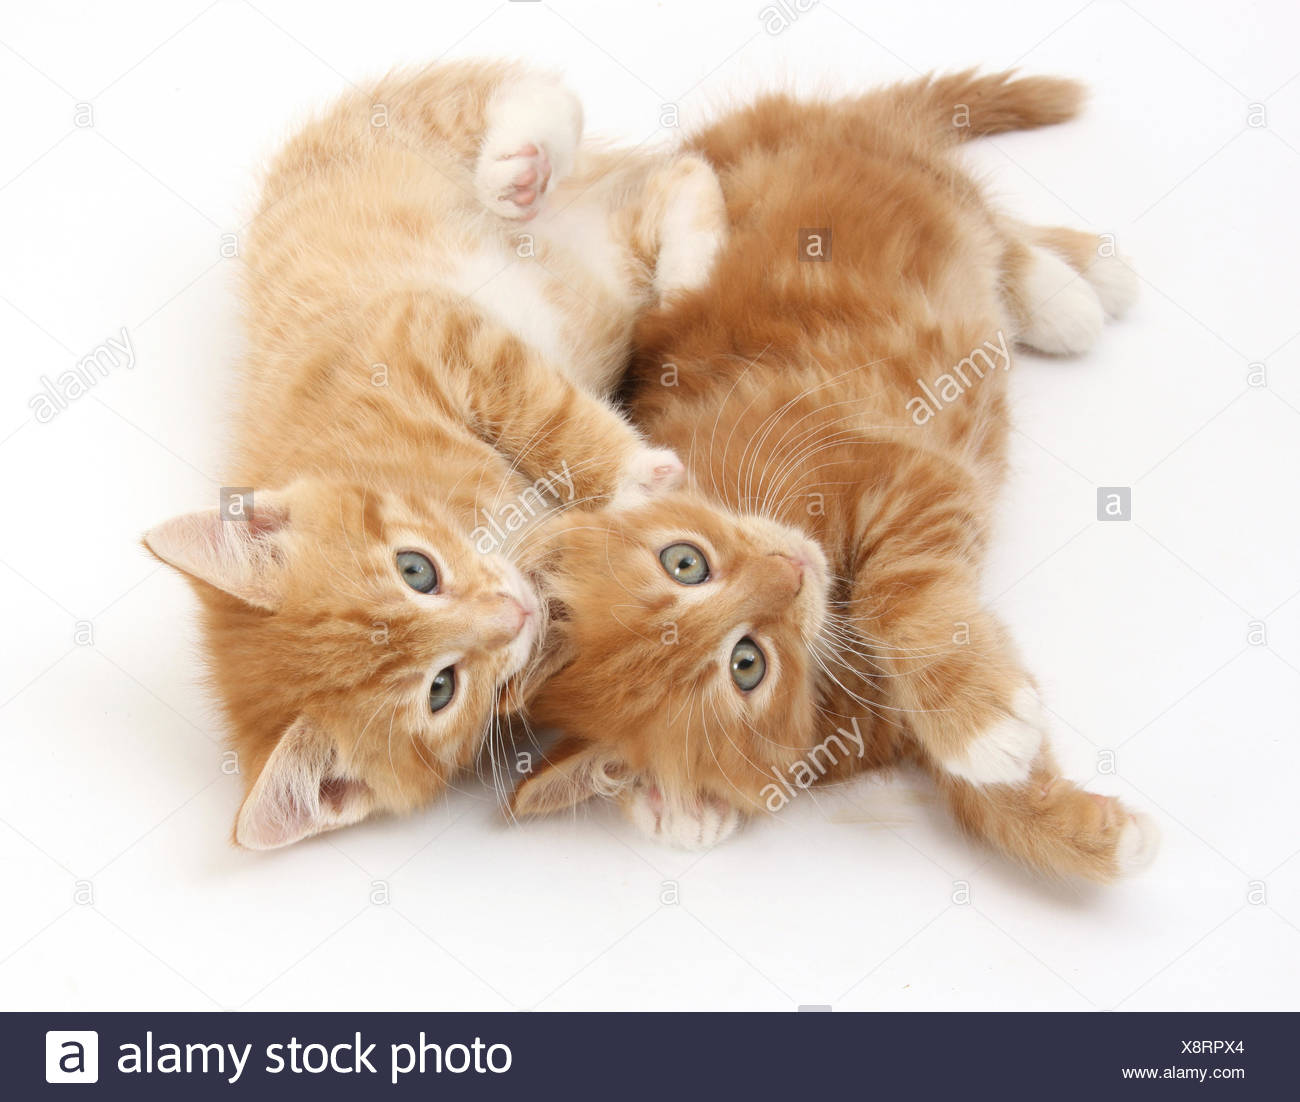 two ginger kittens rolling playfully on their sides stock photo